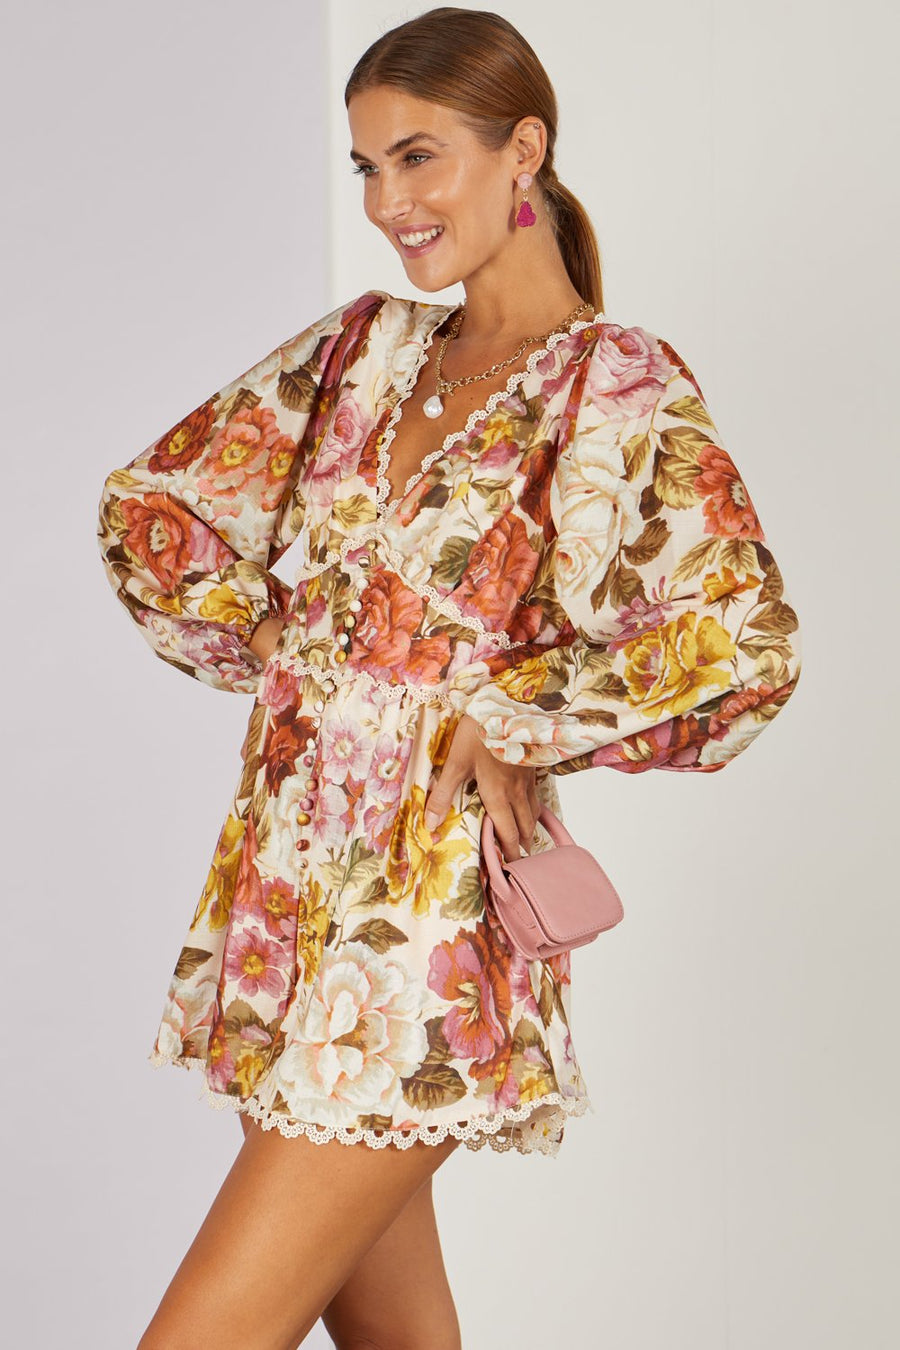 In Your Presence Vintage Floral Playsuit Multi